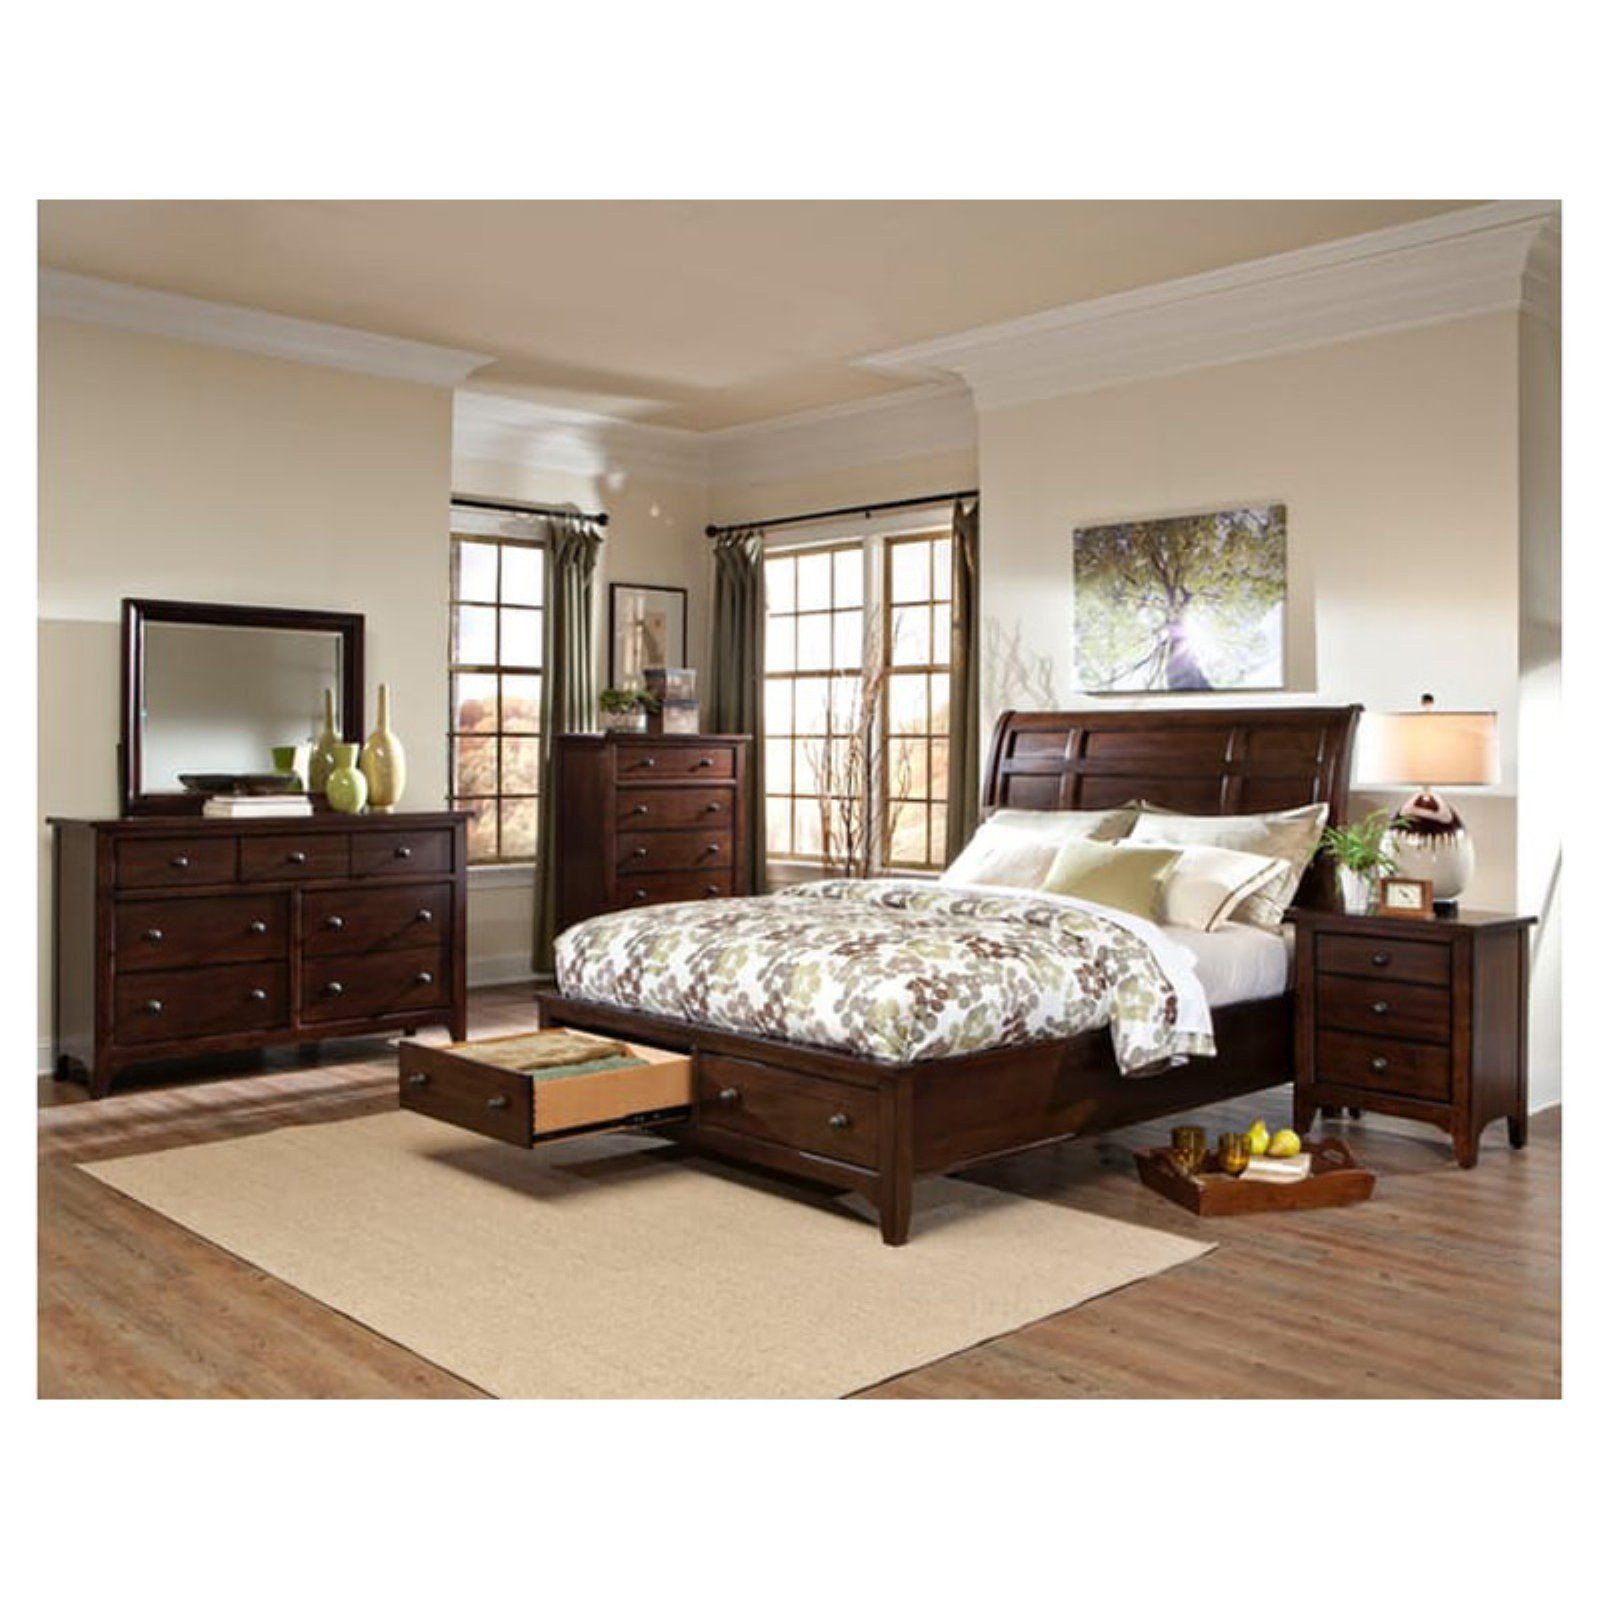 Bedroom Set California King Awesome Imagio Home Jackson Sleigh Storage Bed Size California